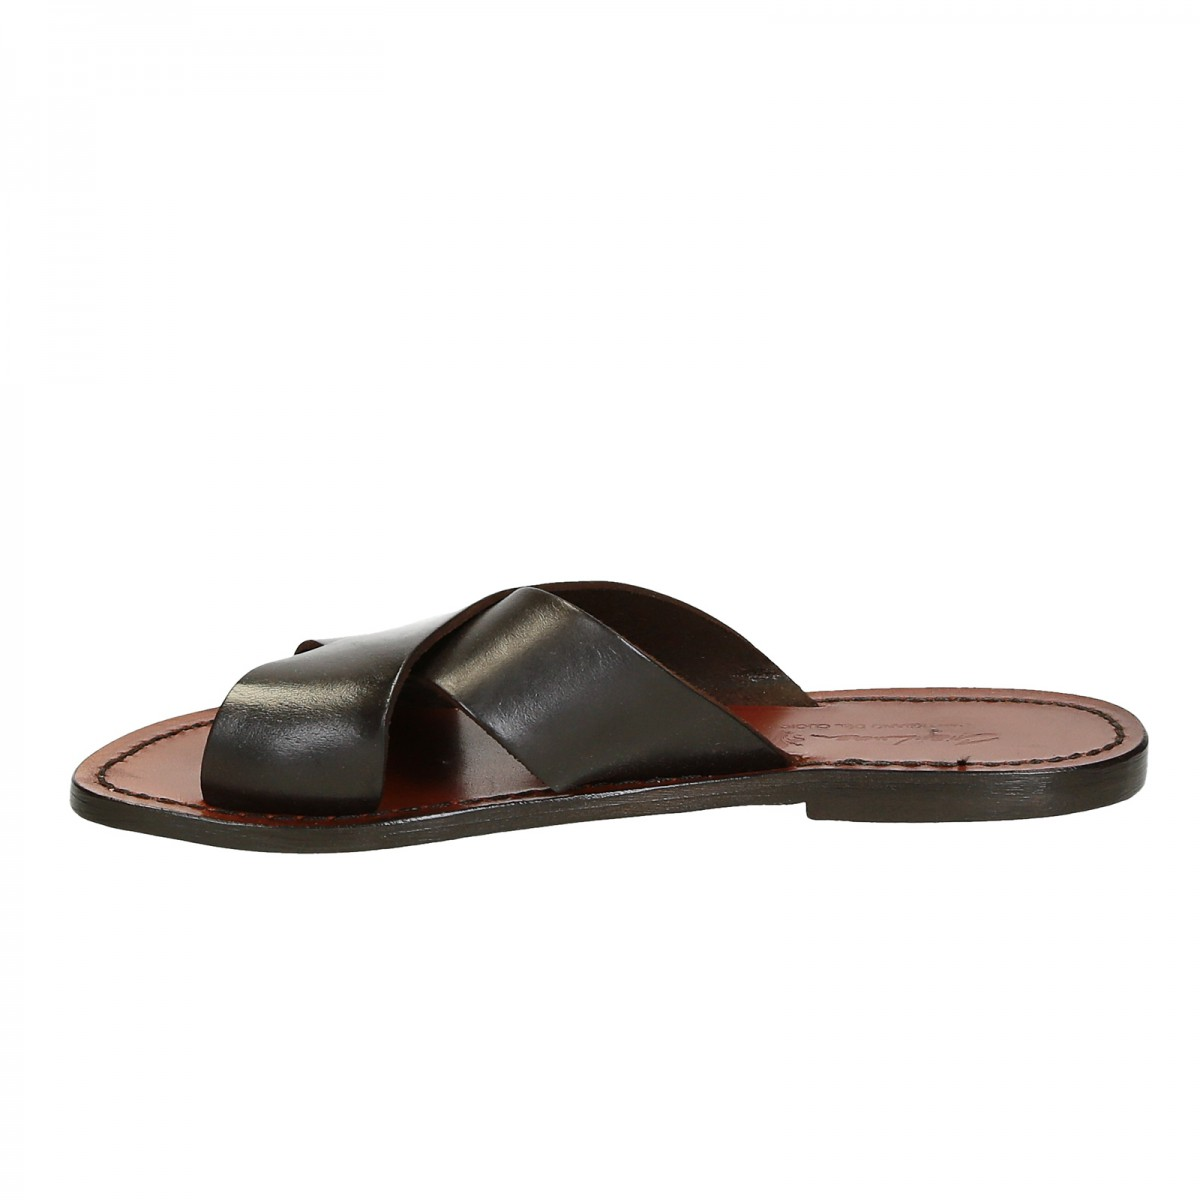 Creative Brown Leather Sandals For Women Amp Men Design 20 By WalkaholicS